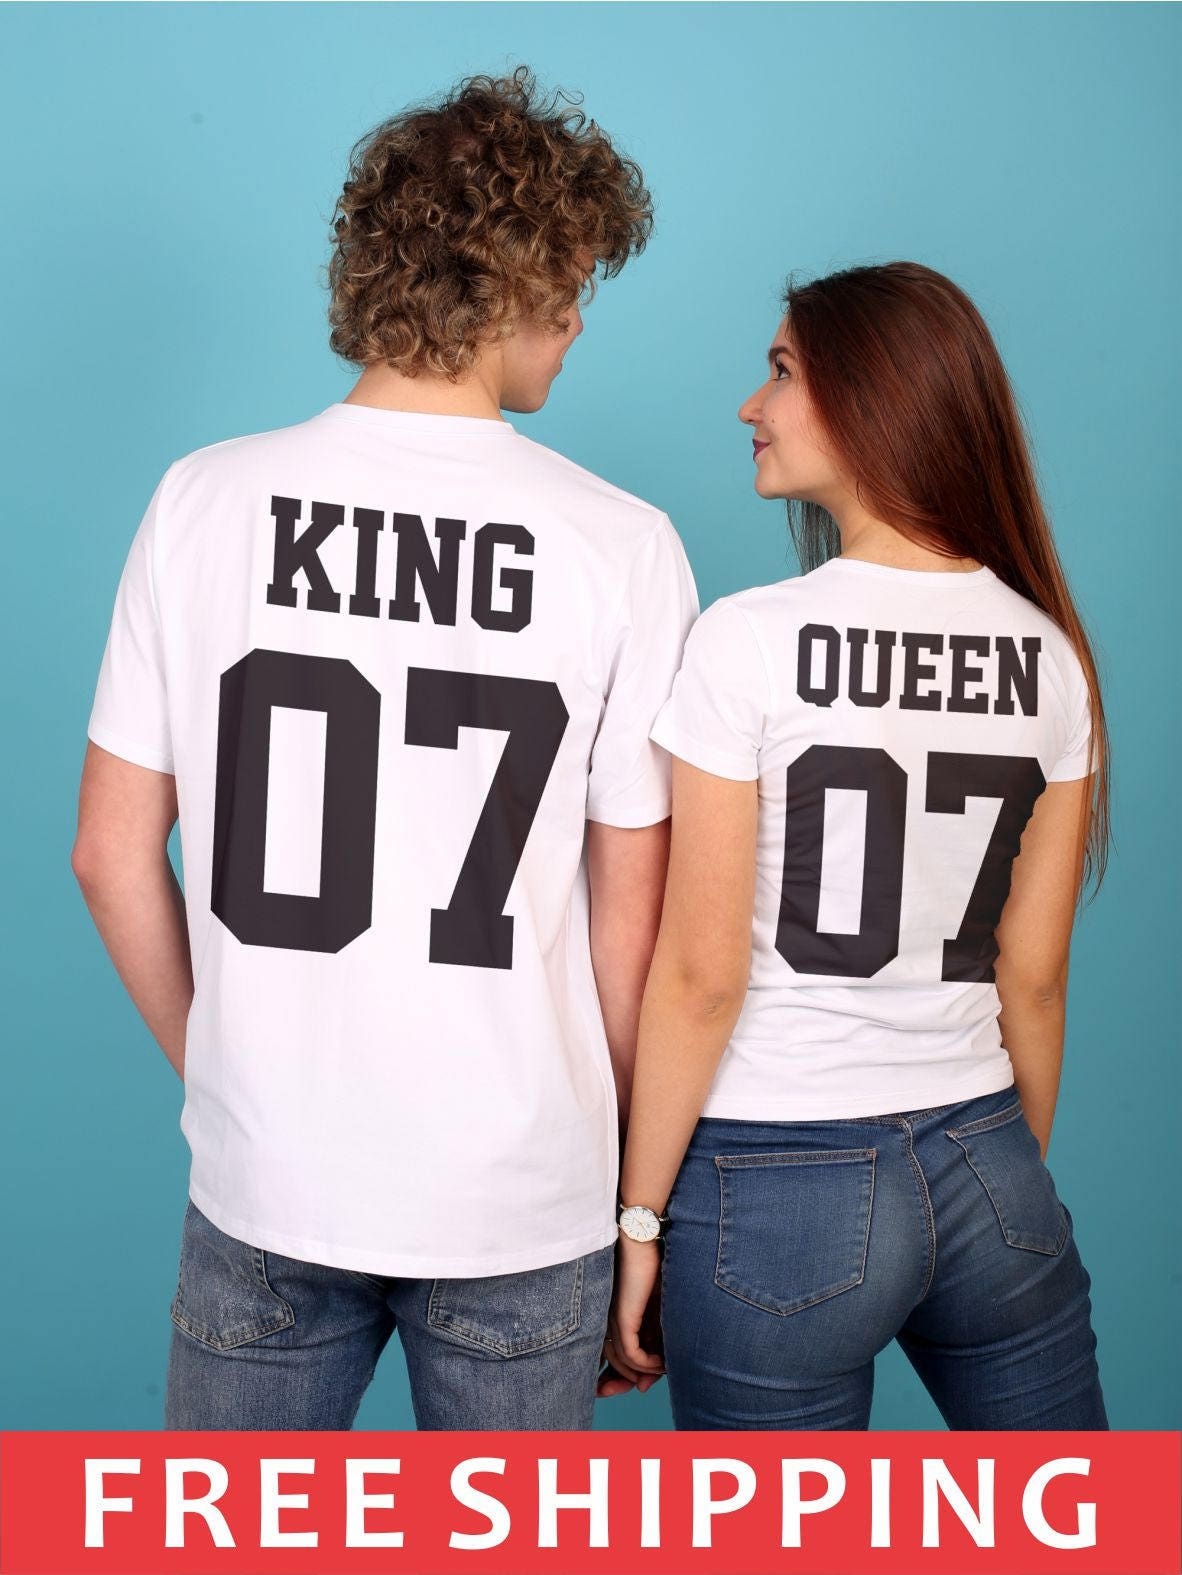 King Queen T Shirts King 07 Queen 07 Couples T Shirt Set Etsy